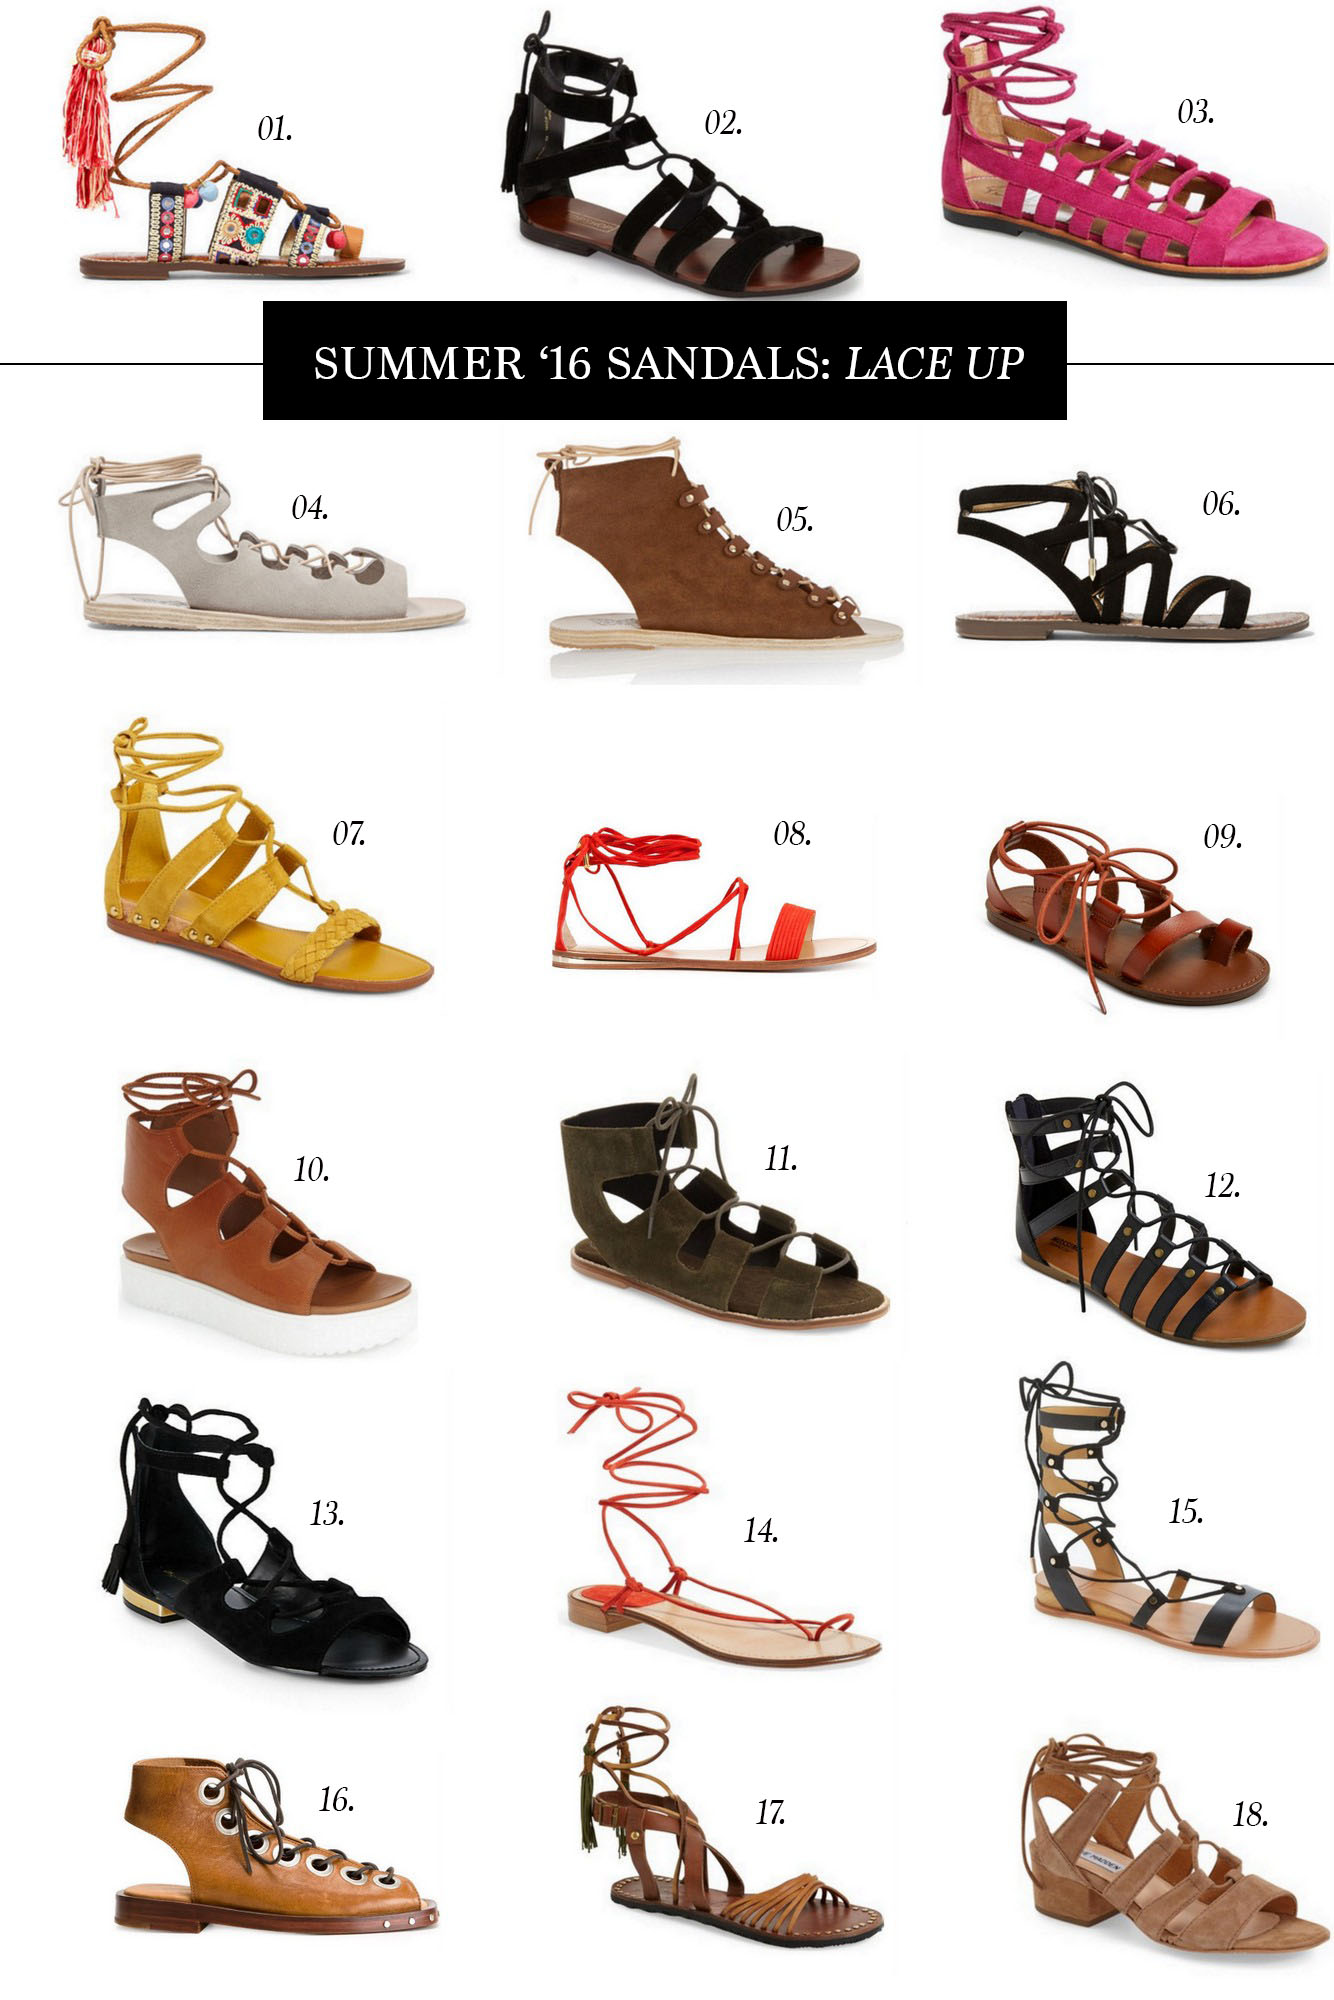 summer-sandals-2016-lace-up